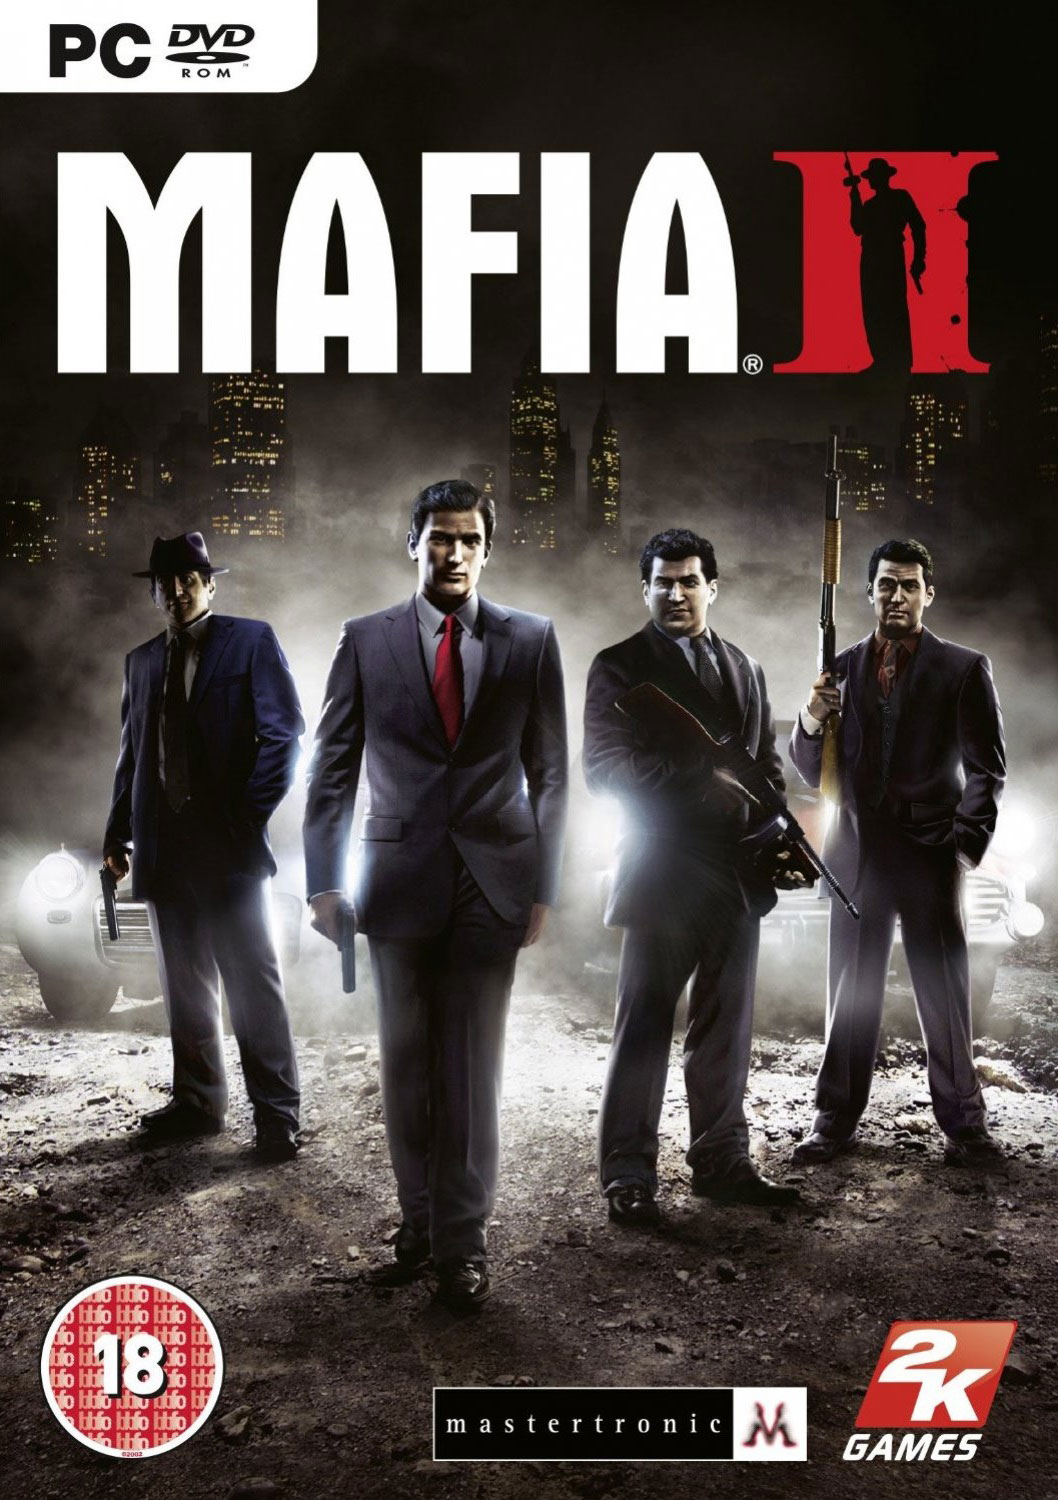 https://img5.downloadha.com/hosein/files/2019/04/Mafia-II-PC-Cover-Large.jpg